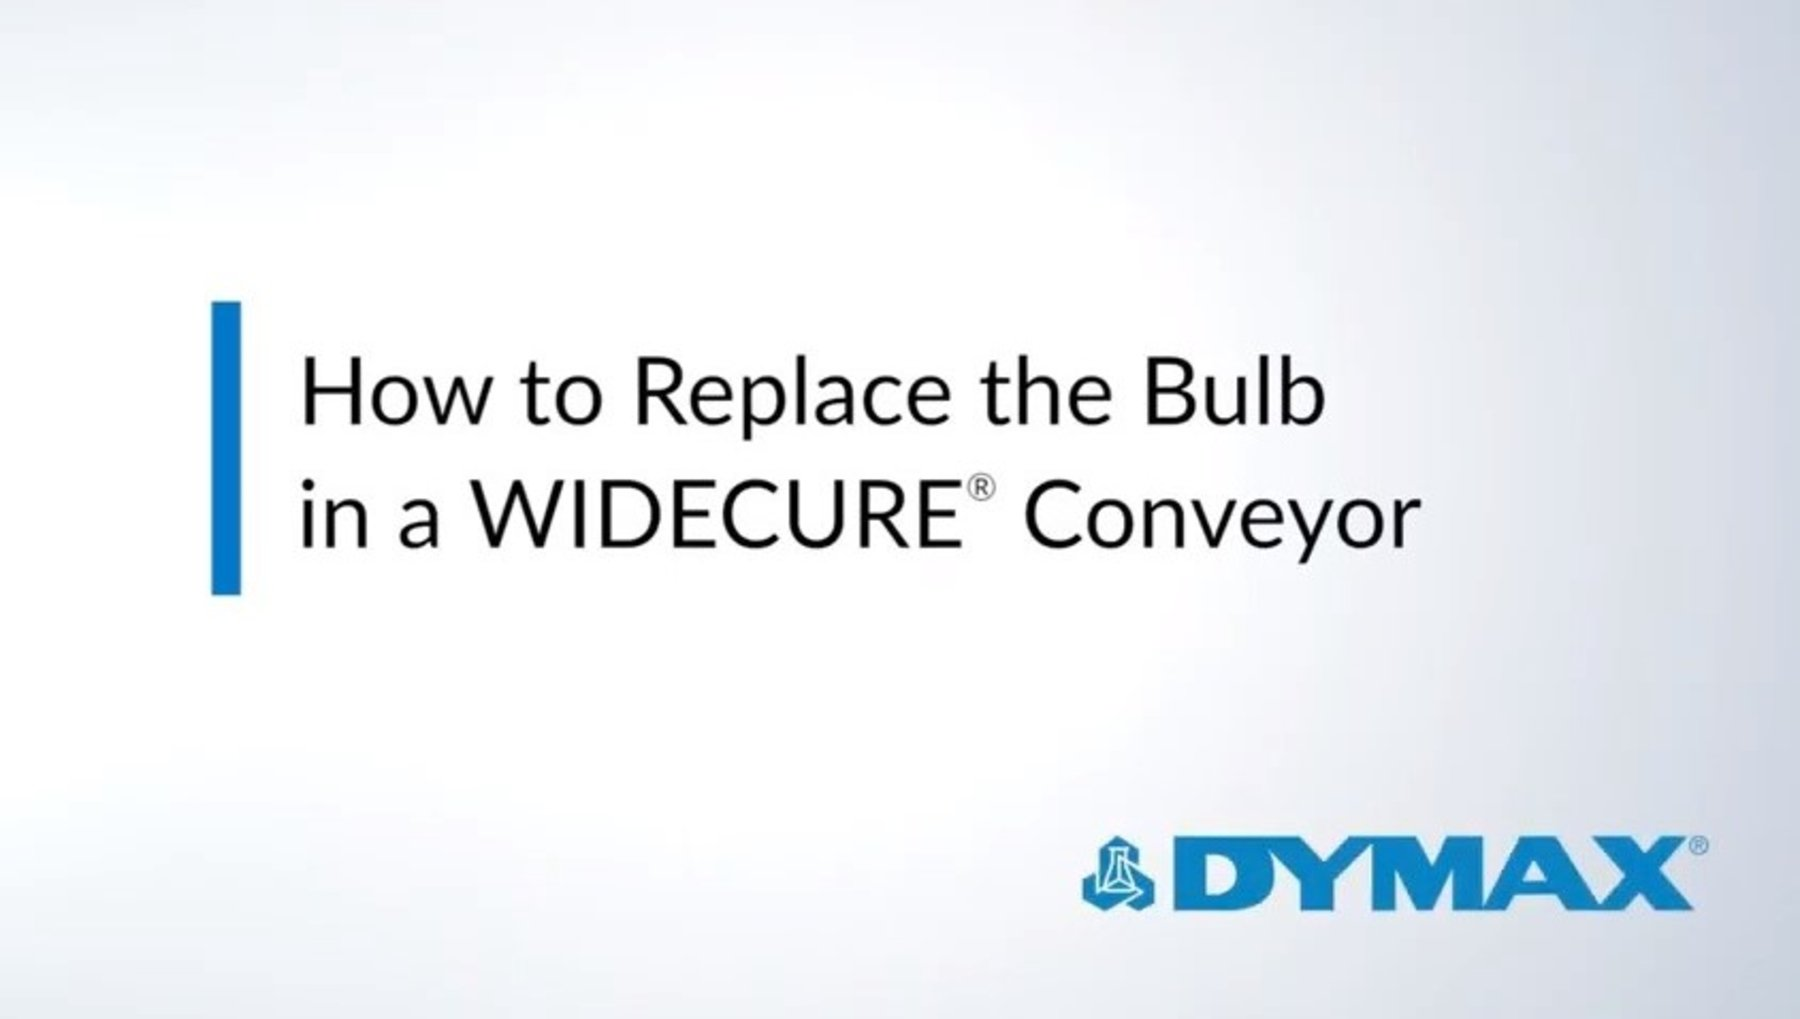 How to Replace the Bulb in the WIDECURE® Conveyor